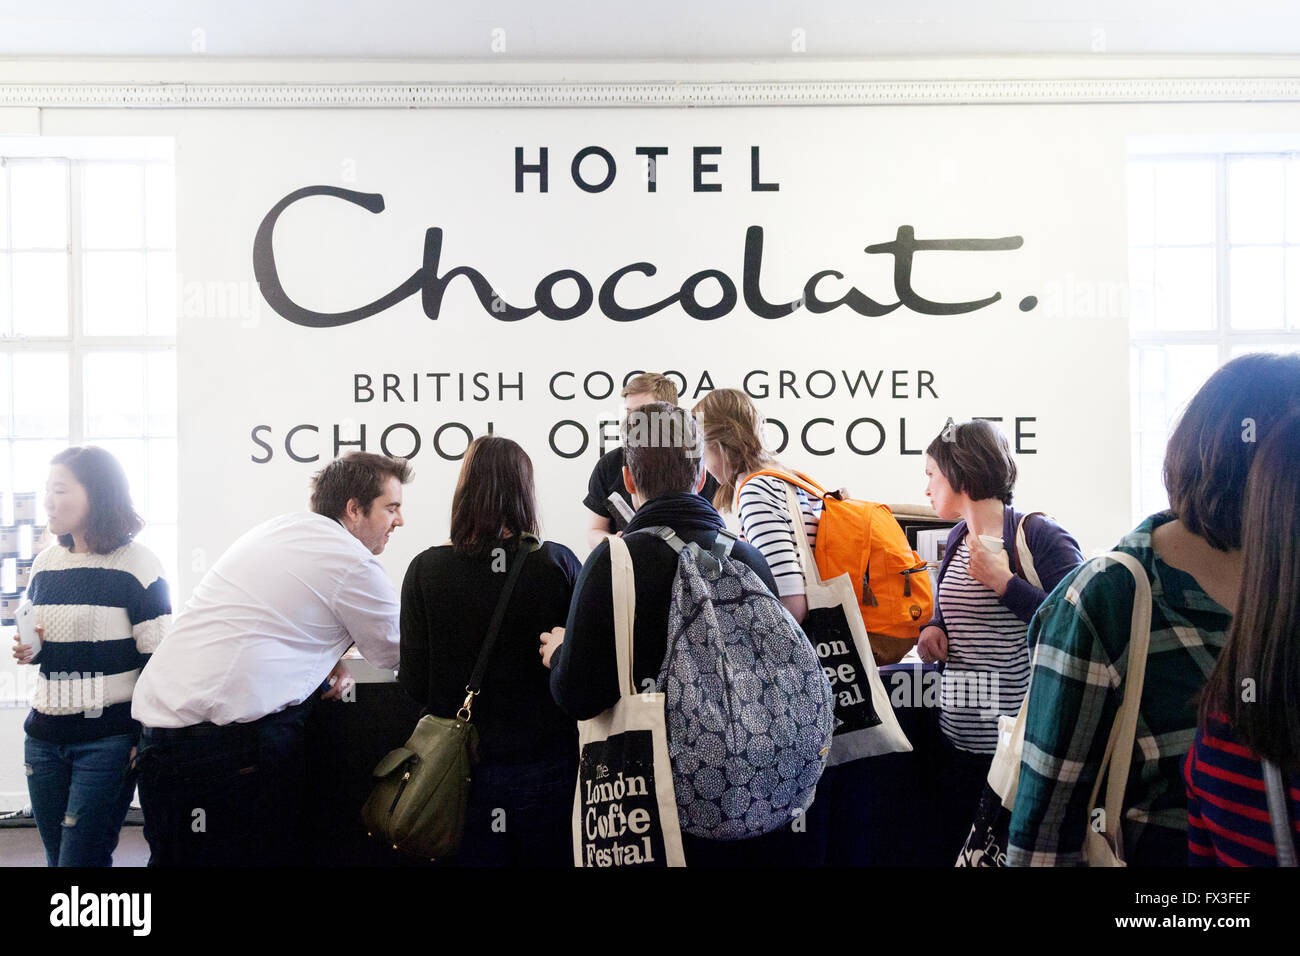 People At A Hotel Chocolat Stand British Cocoa Grower The